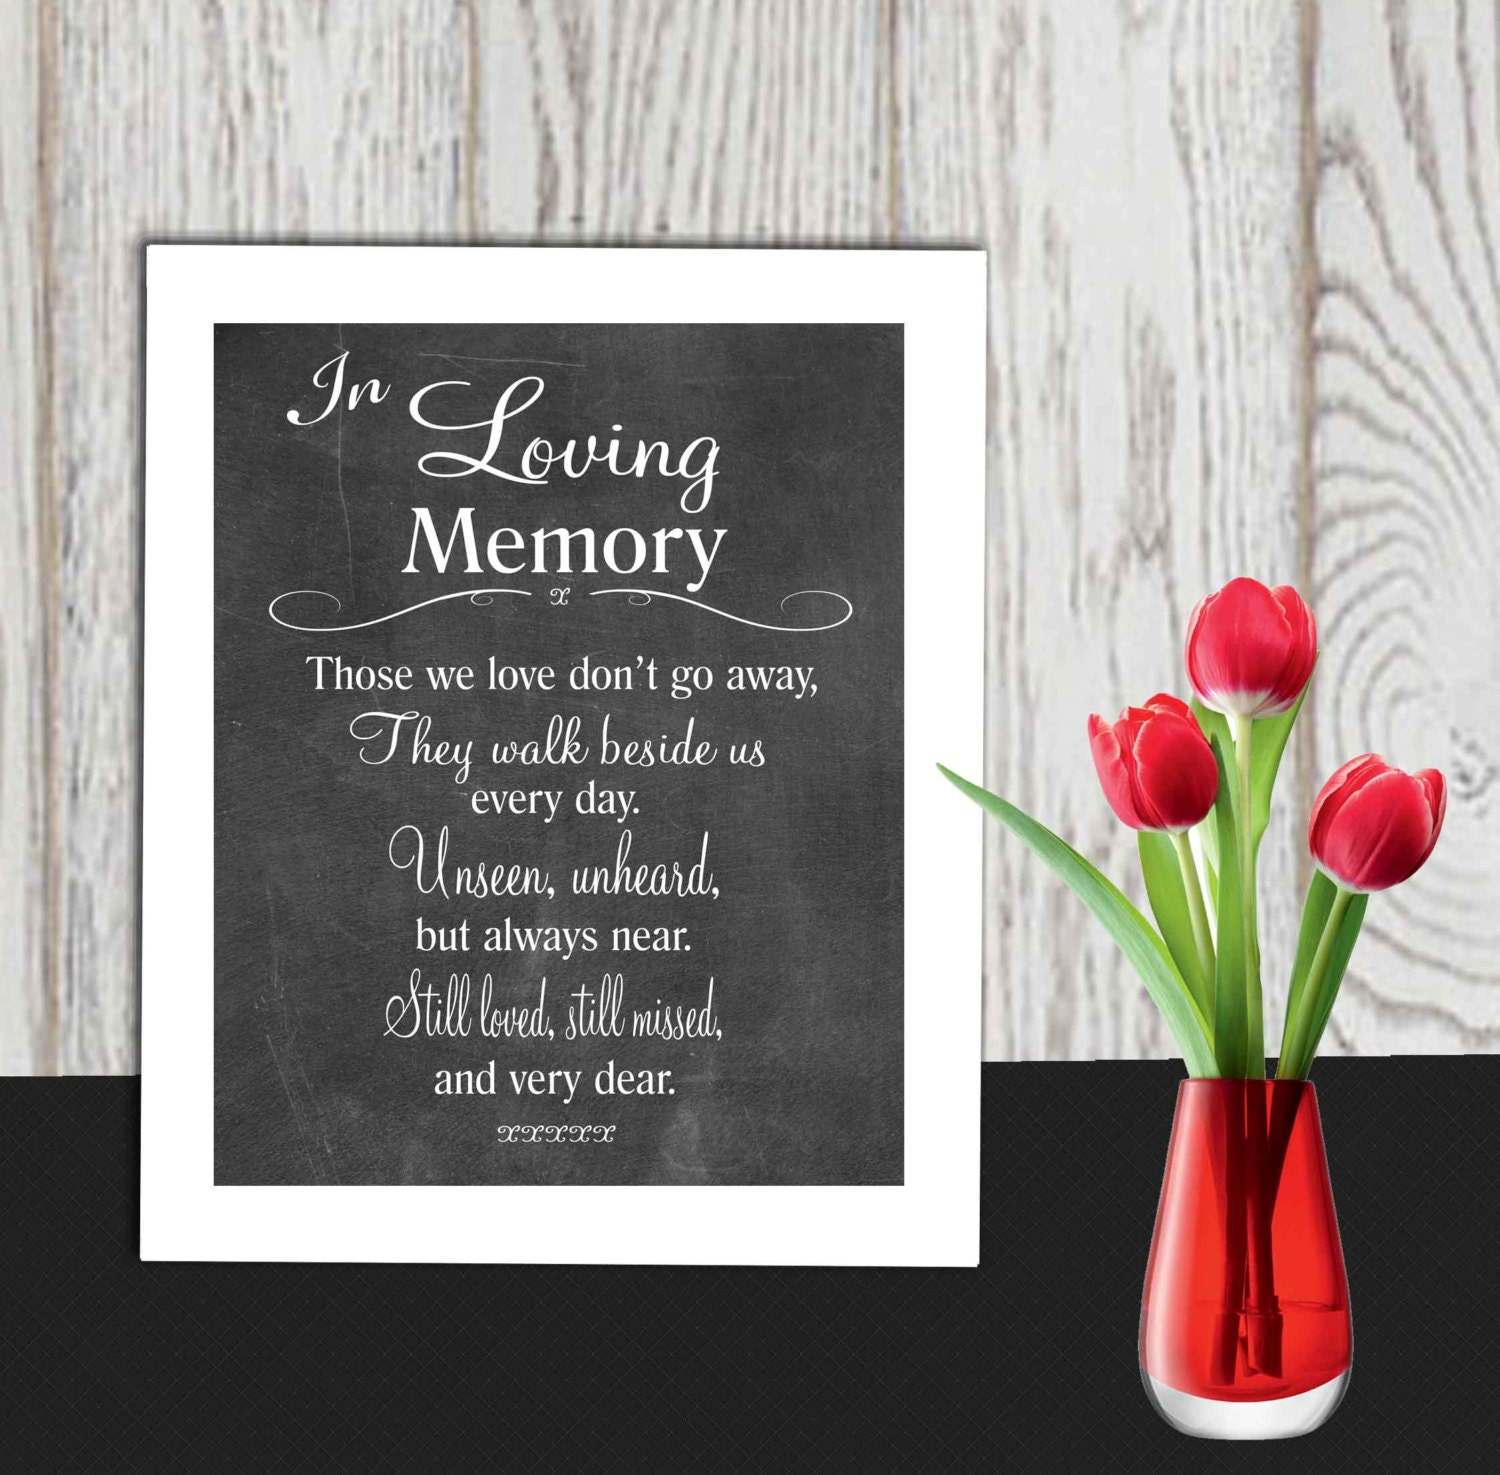 It's just a photo of Crafty In Loving Memory Free Printable